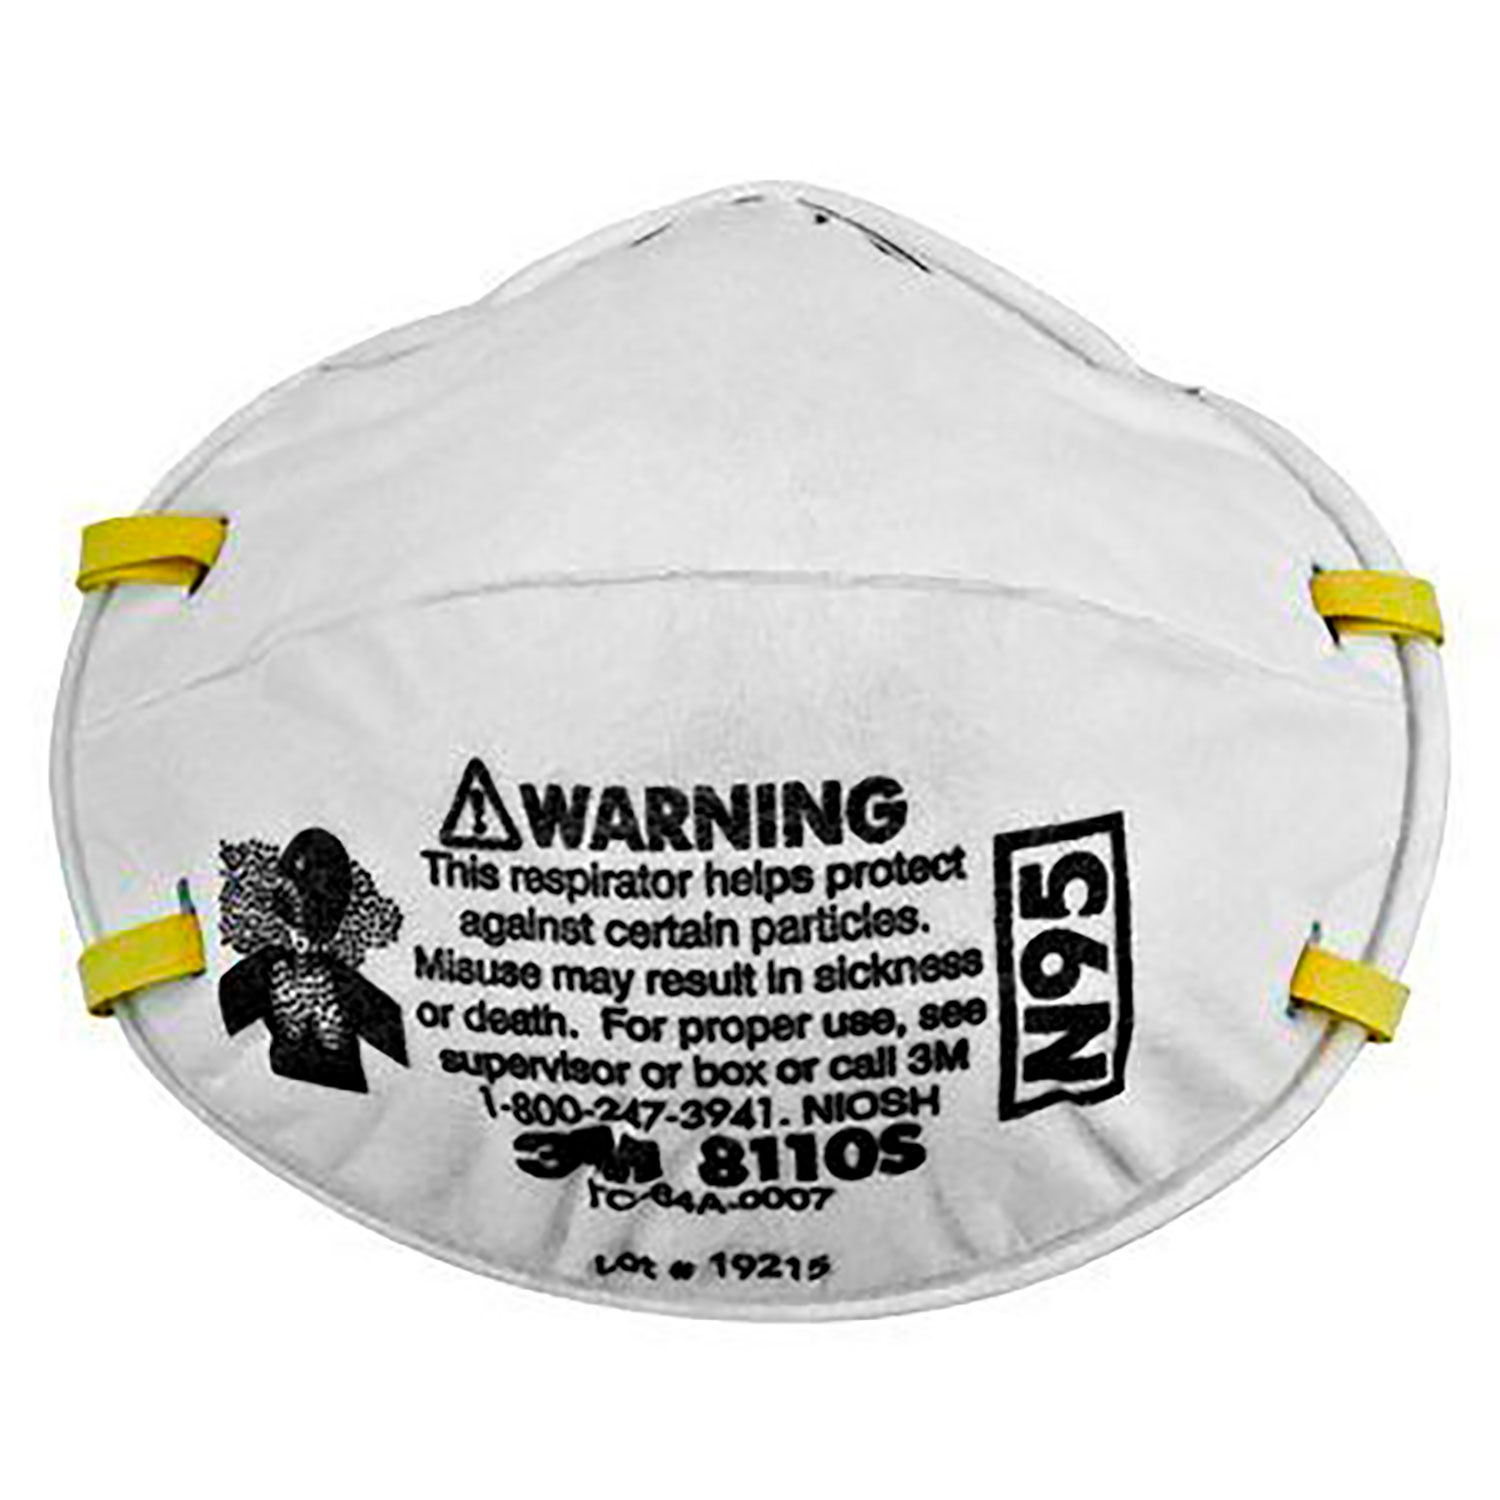 3m™ Protection Respiratory Disposable Respirators 8110s